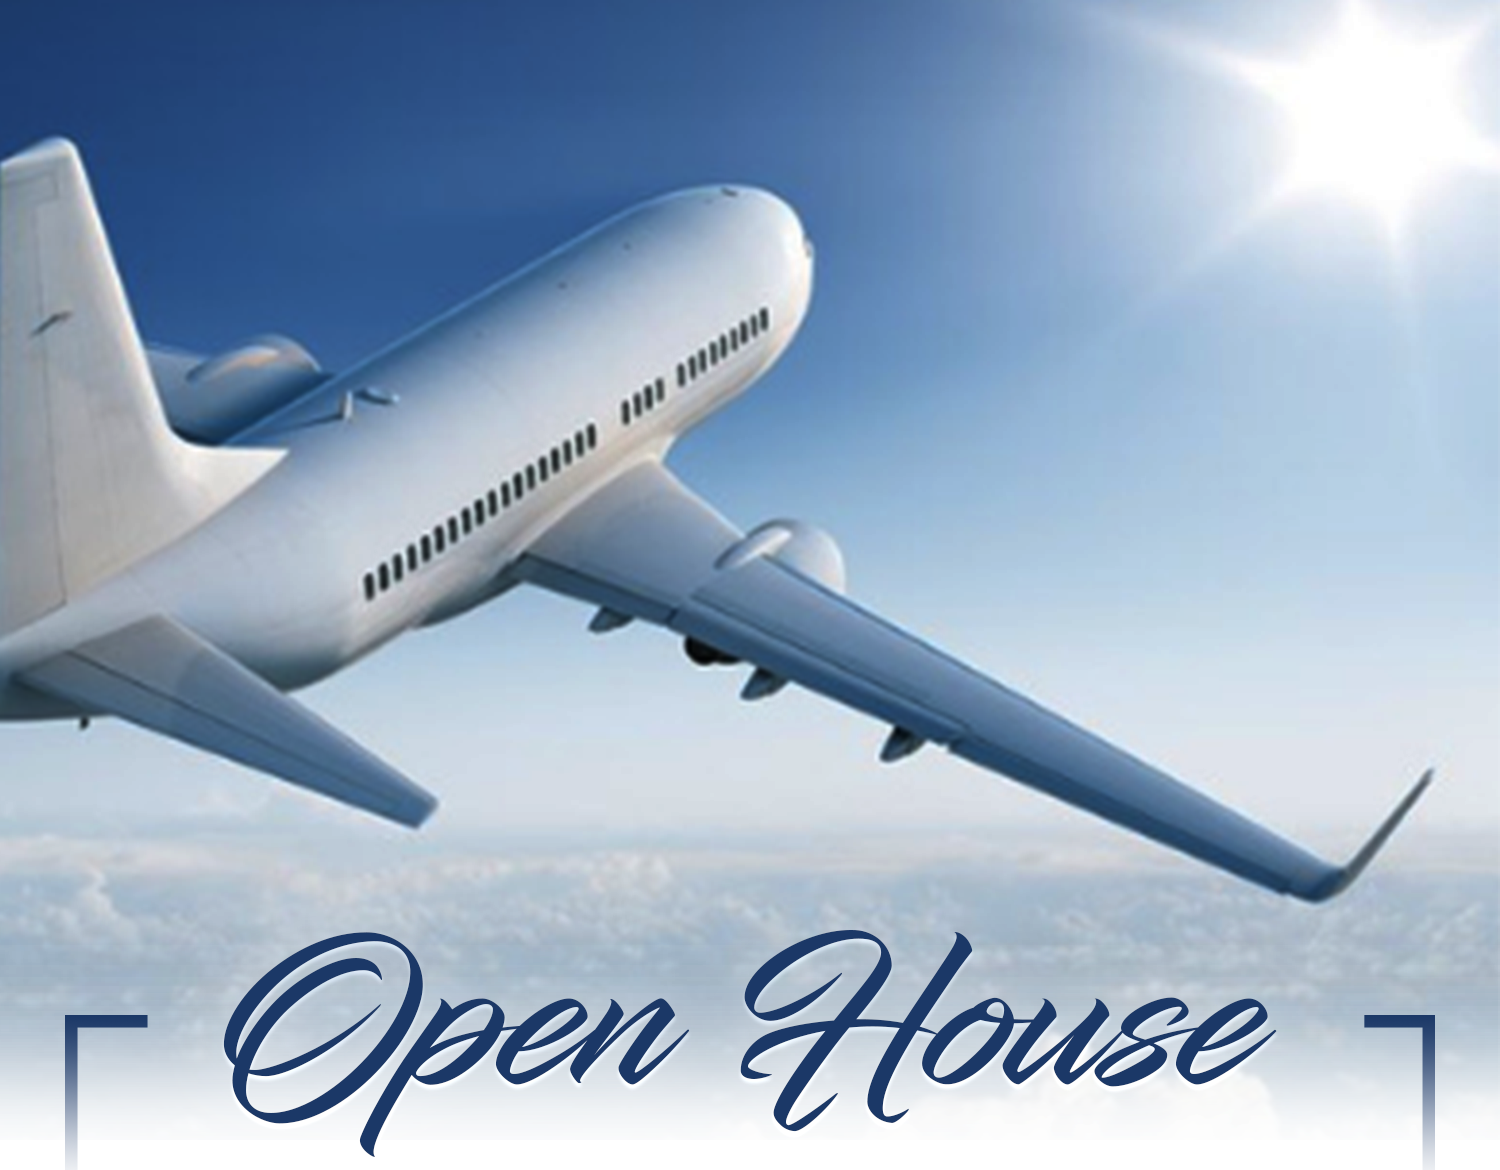 FAA Open House (Top Image)